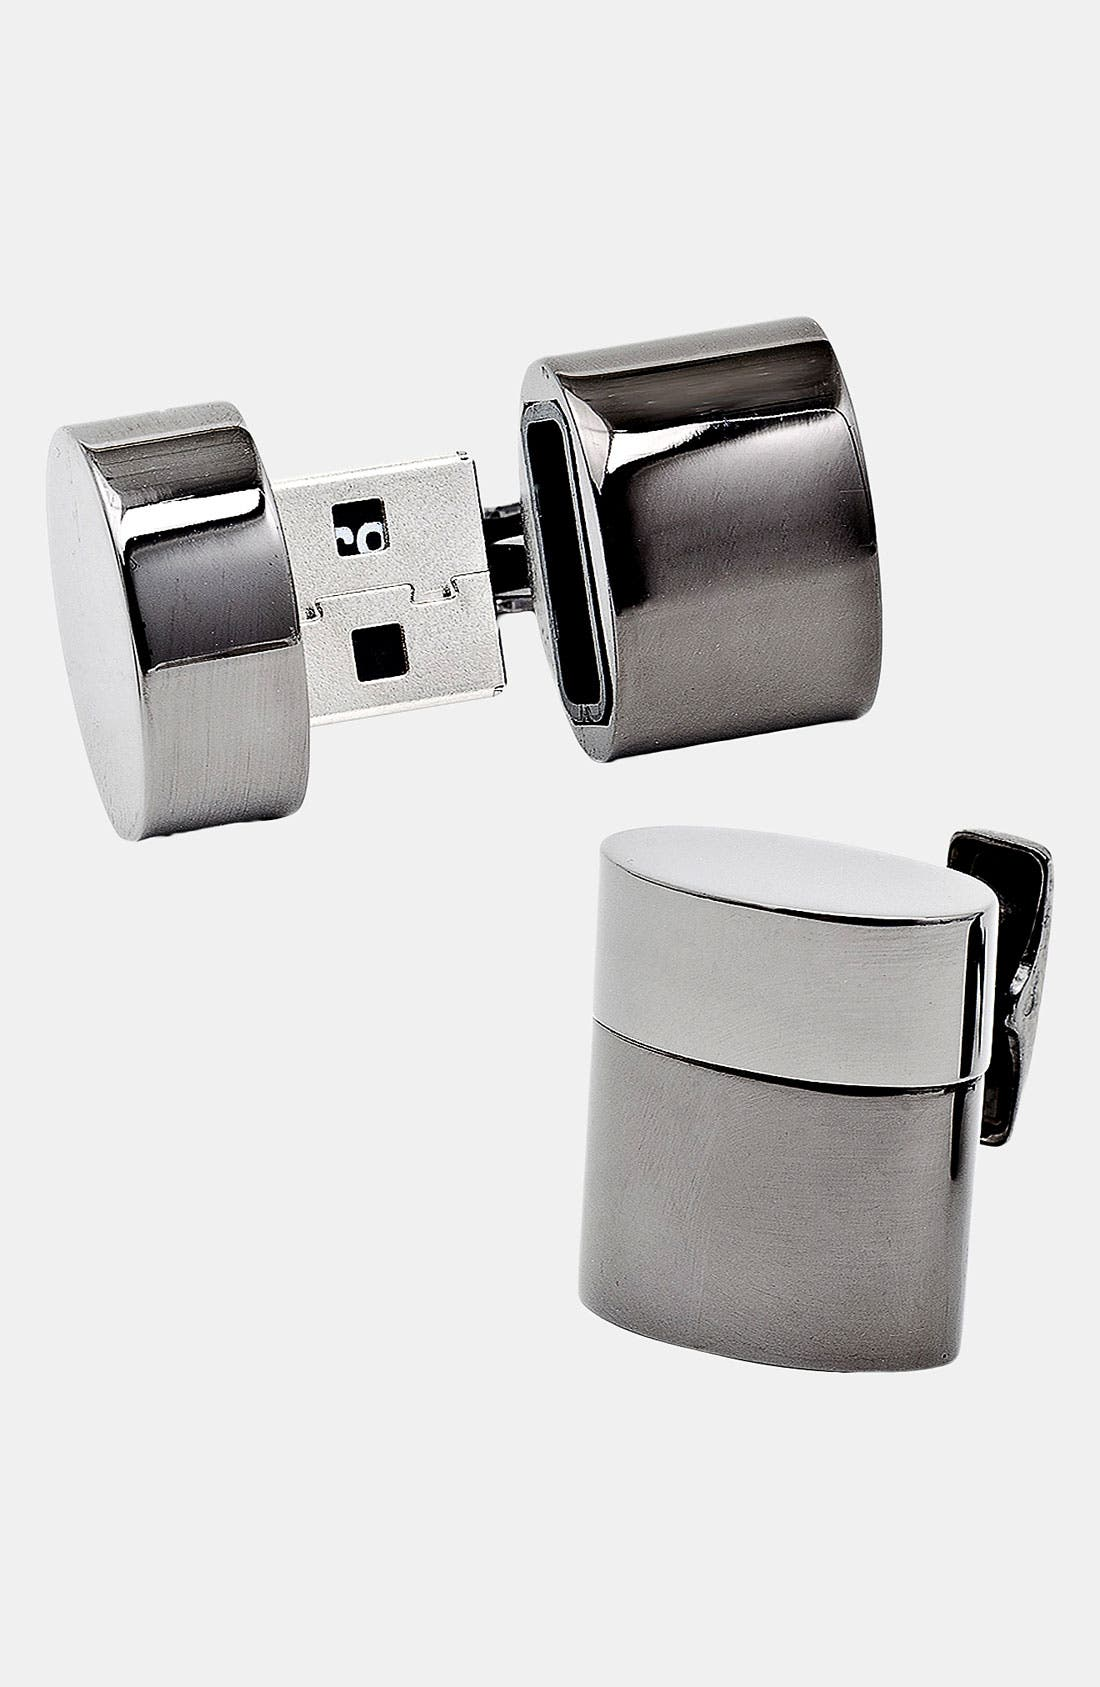 Main Image - Ox and Bull Trading Co. 4GB Flash Drive Cuff Links